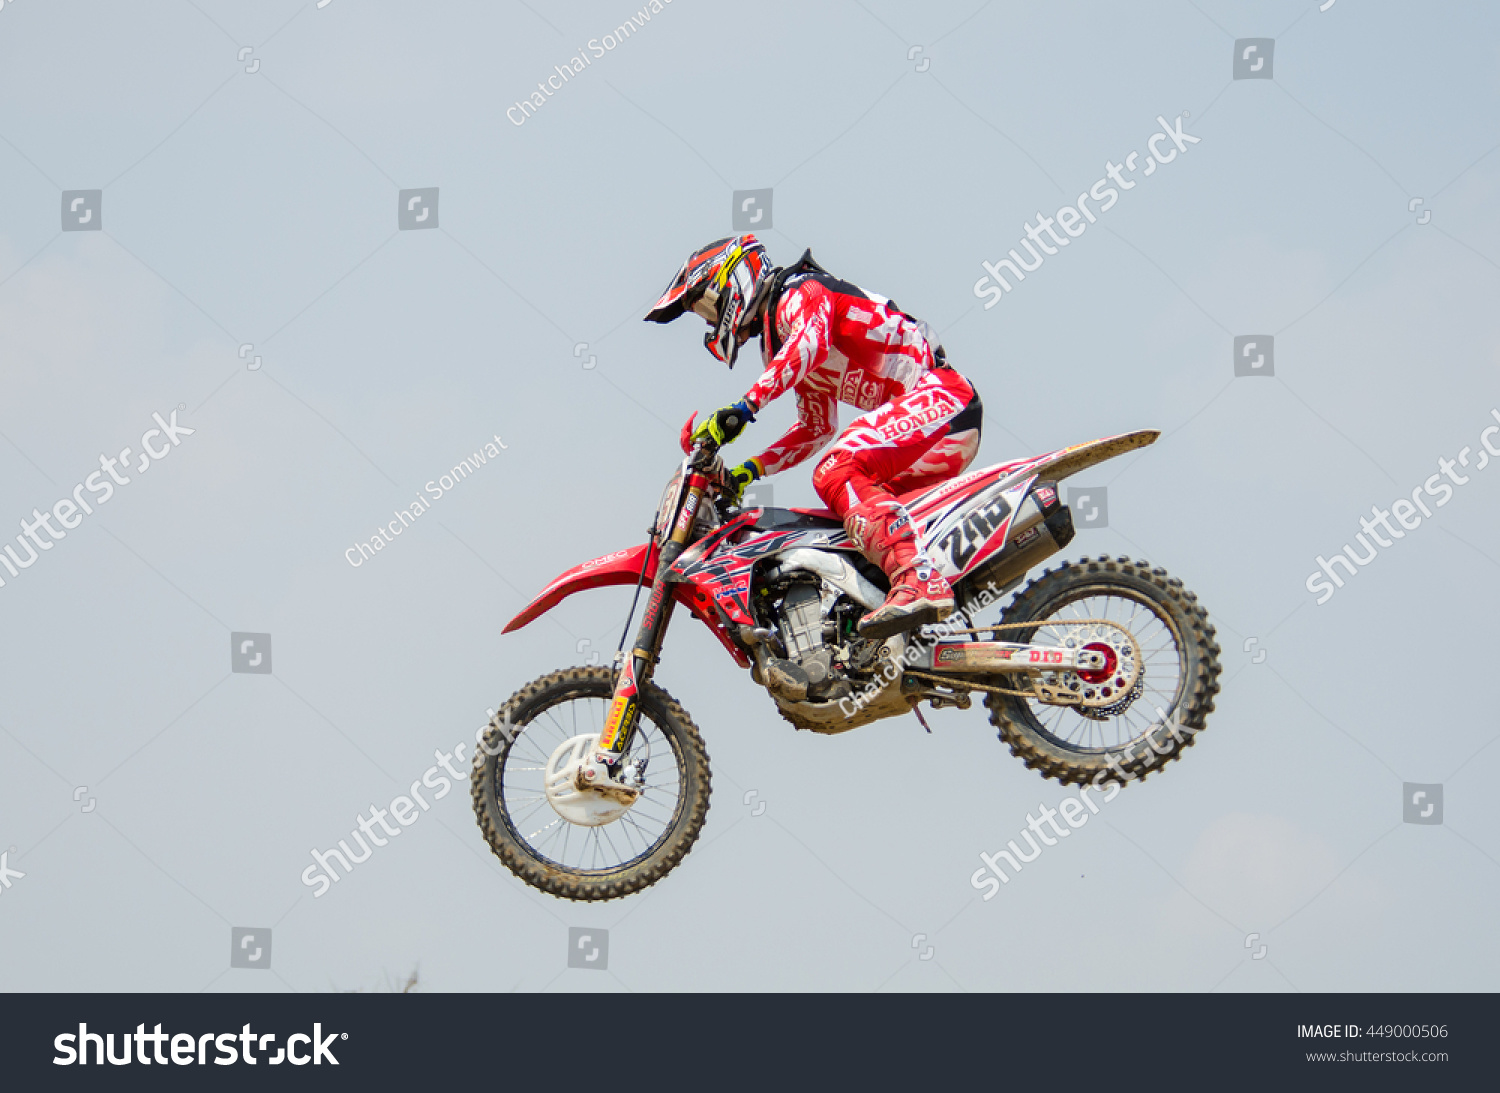 SUPHANBURI MARCH 06 Tim Gajser #243 with Honda Motorcycle in competes during the FIM MXGP Motocross Wolrd Championship Grand Prix of Thailand 2016 on March 06 2016 in Suphanburi Thailand